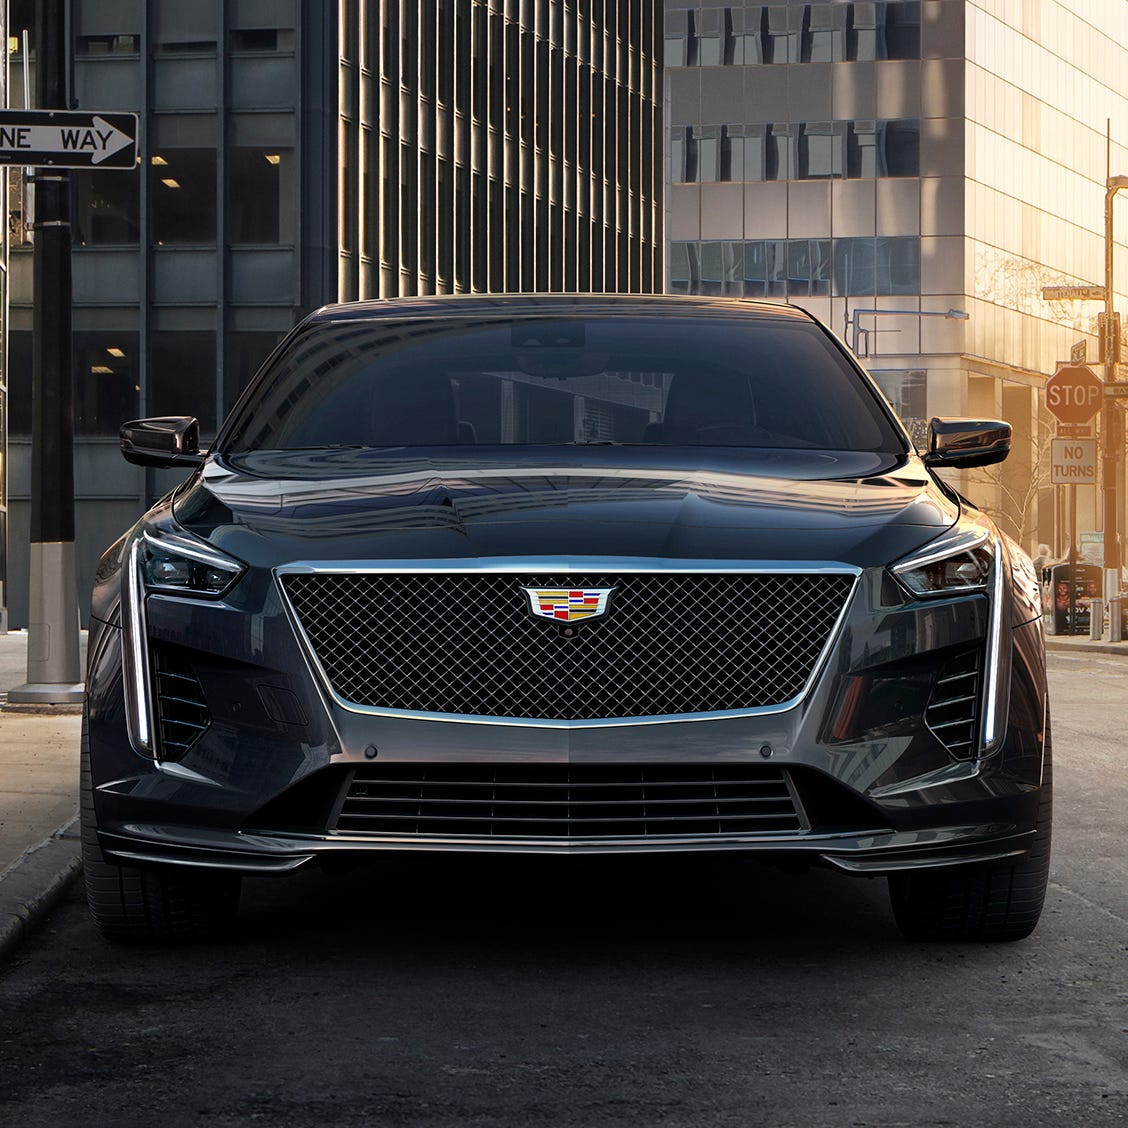 Cadillac plans to expand V-Series across lineup